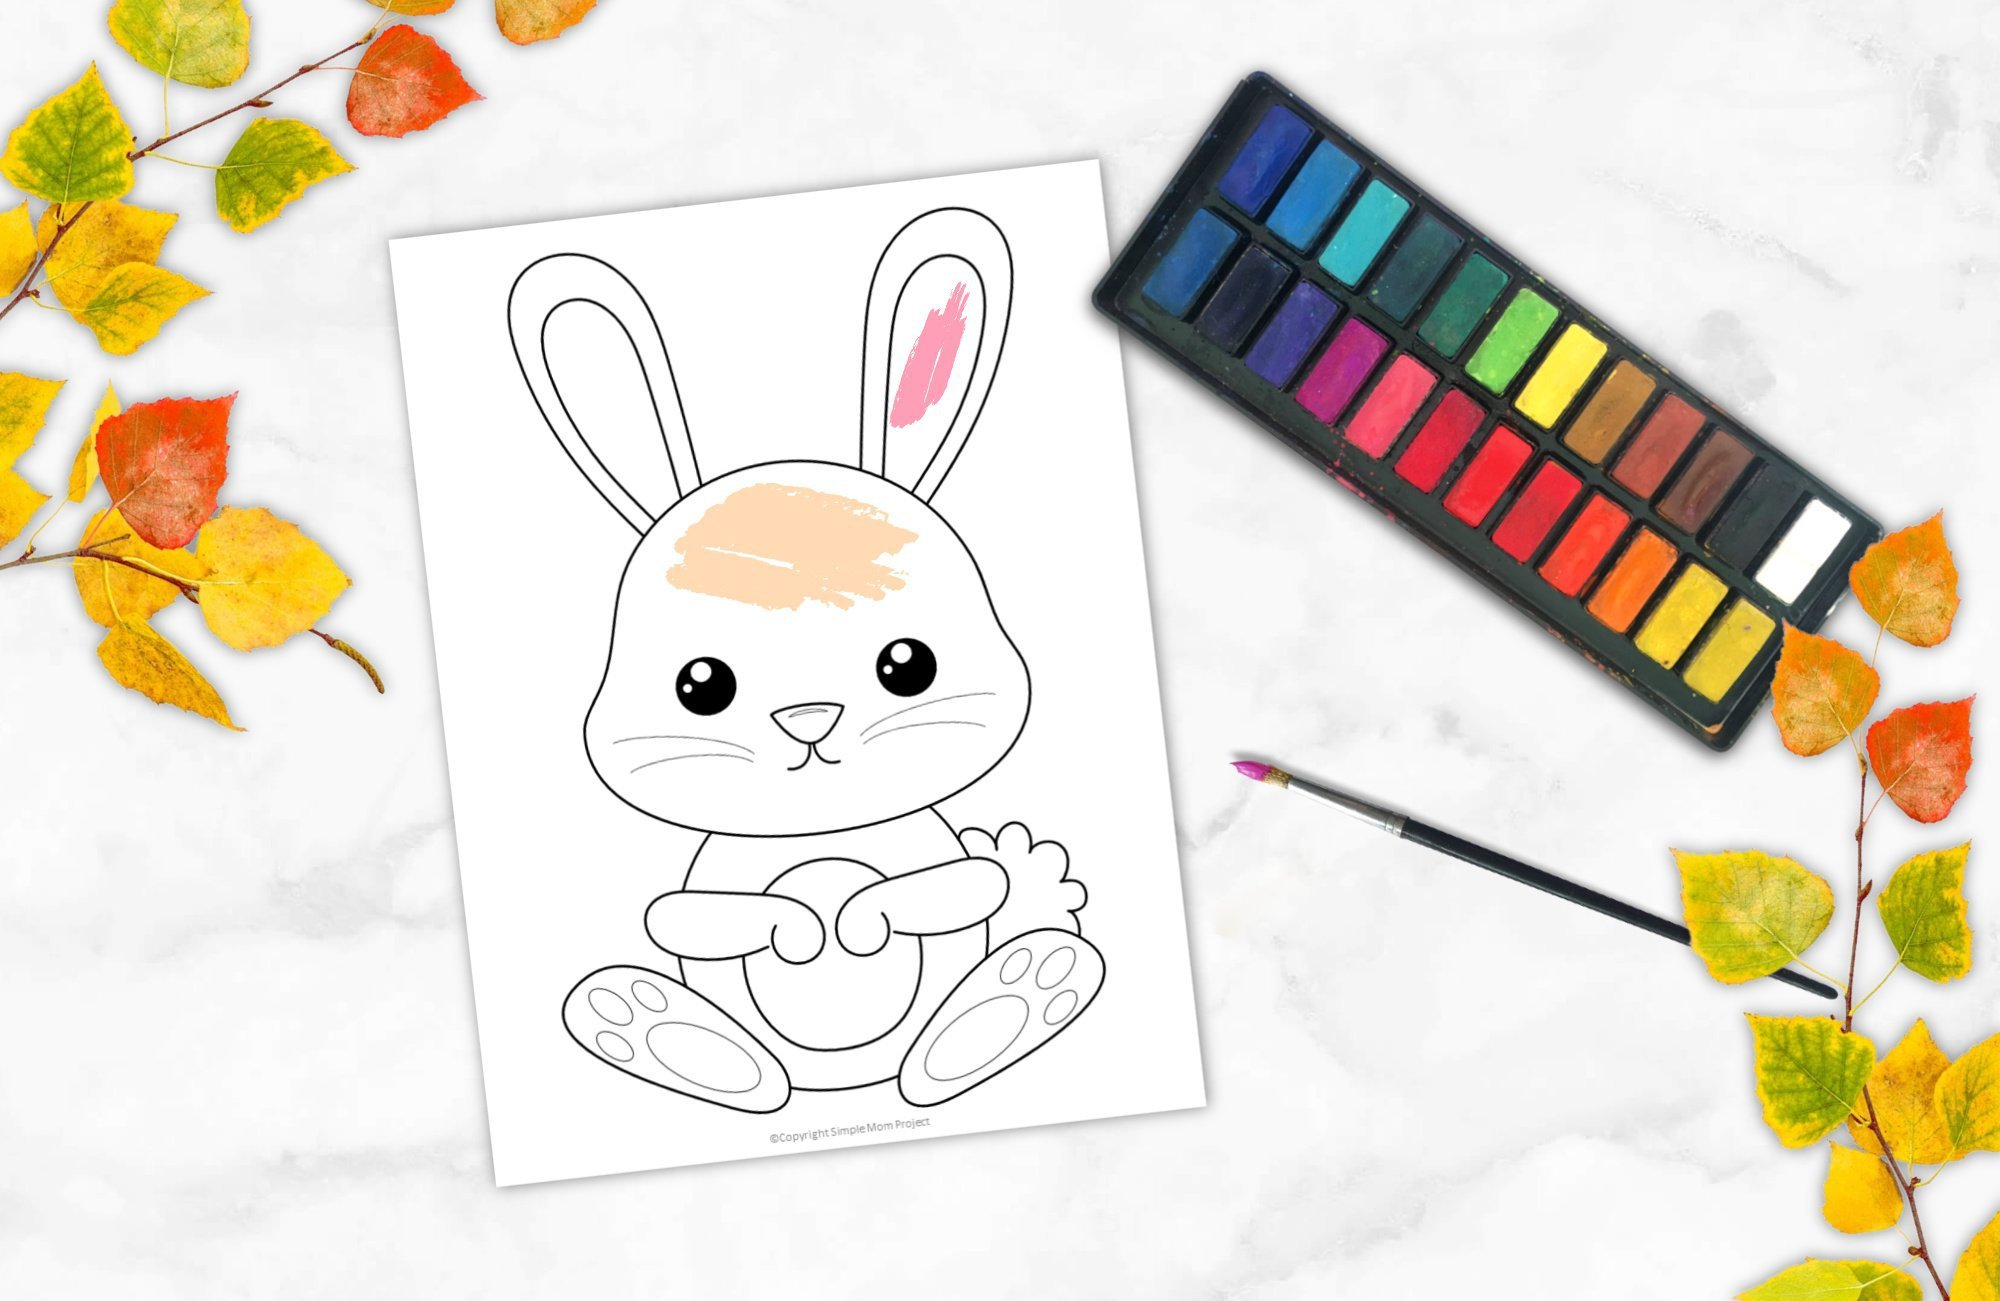 Free Printable Woodland Forest Rabbit Coloring Page for Kids Preschoolers Toddlers and kindergartners